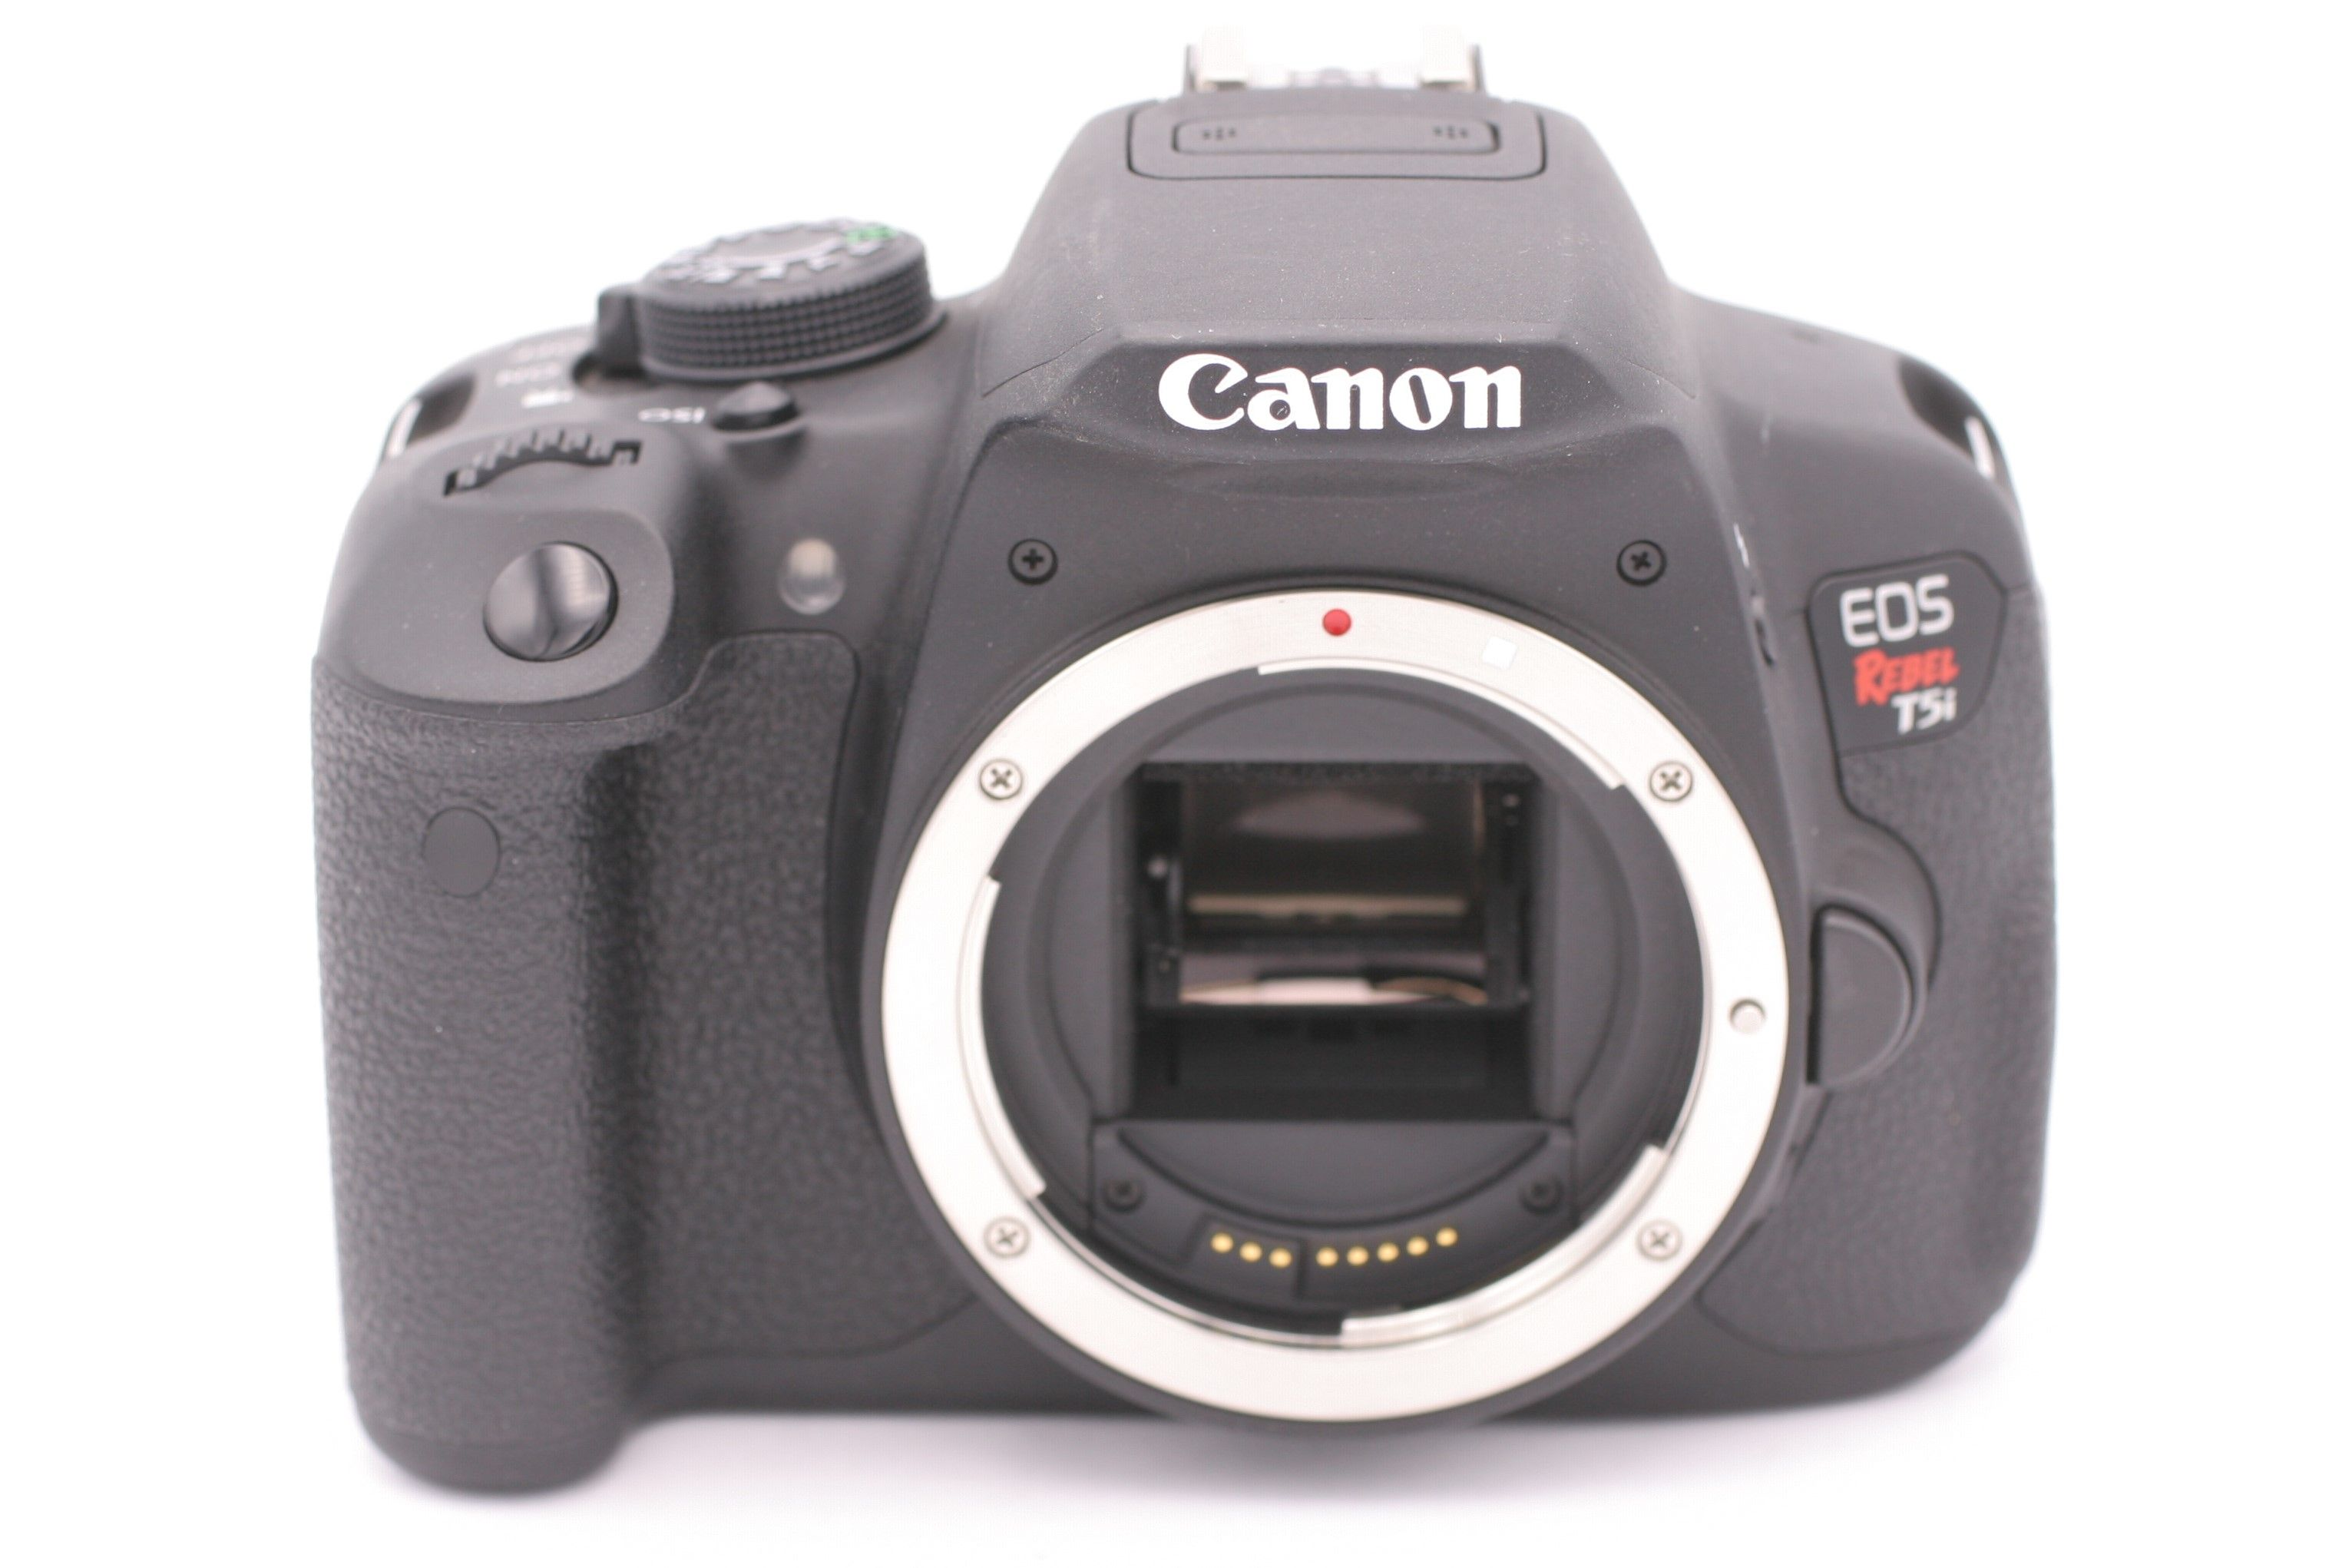 Details about Canon EOS 700D (EOS Rebel T5i) 18 0MP Digital SLR Camera -  Shutter Count: 323